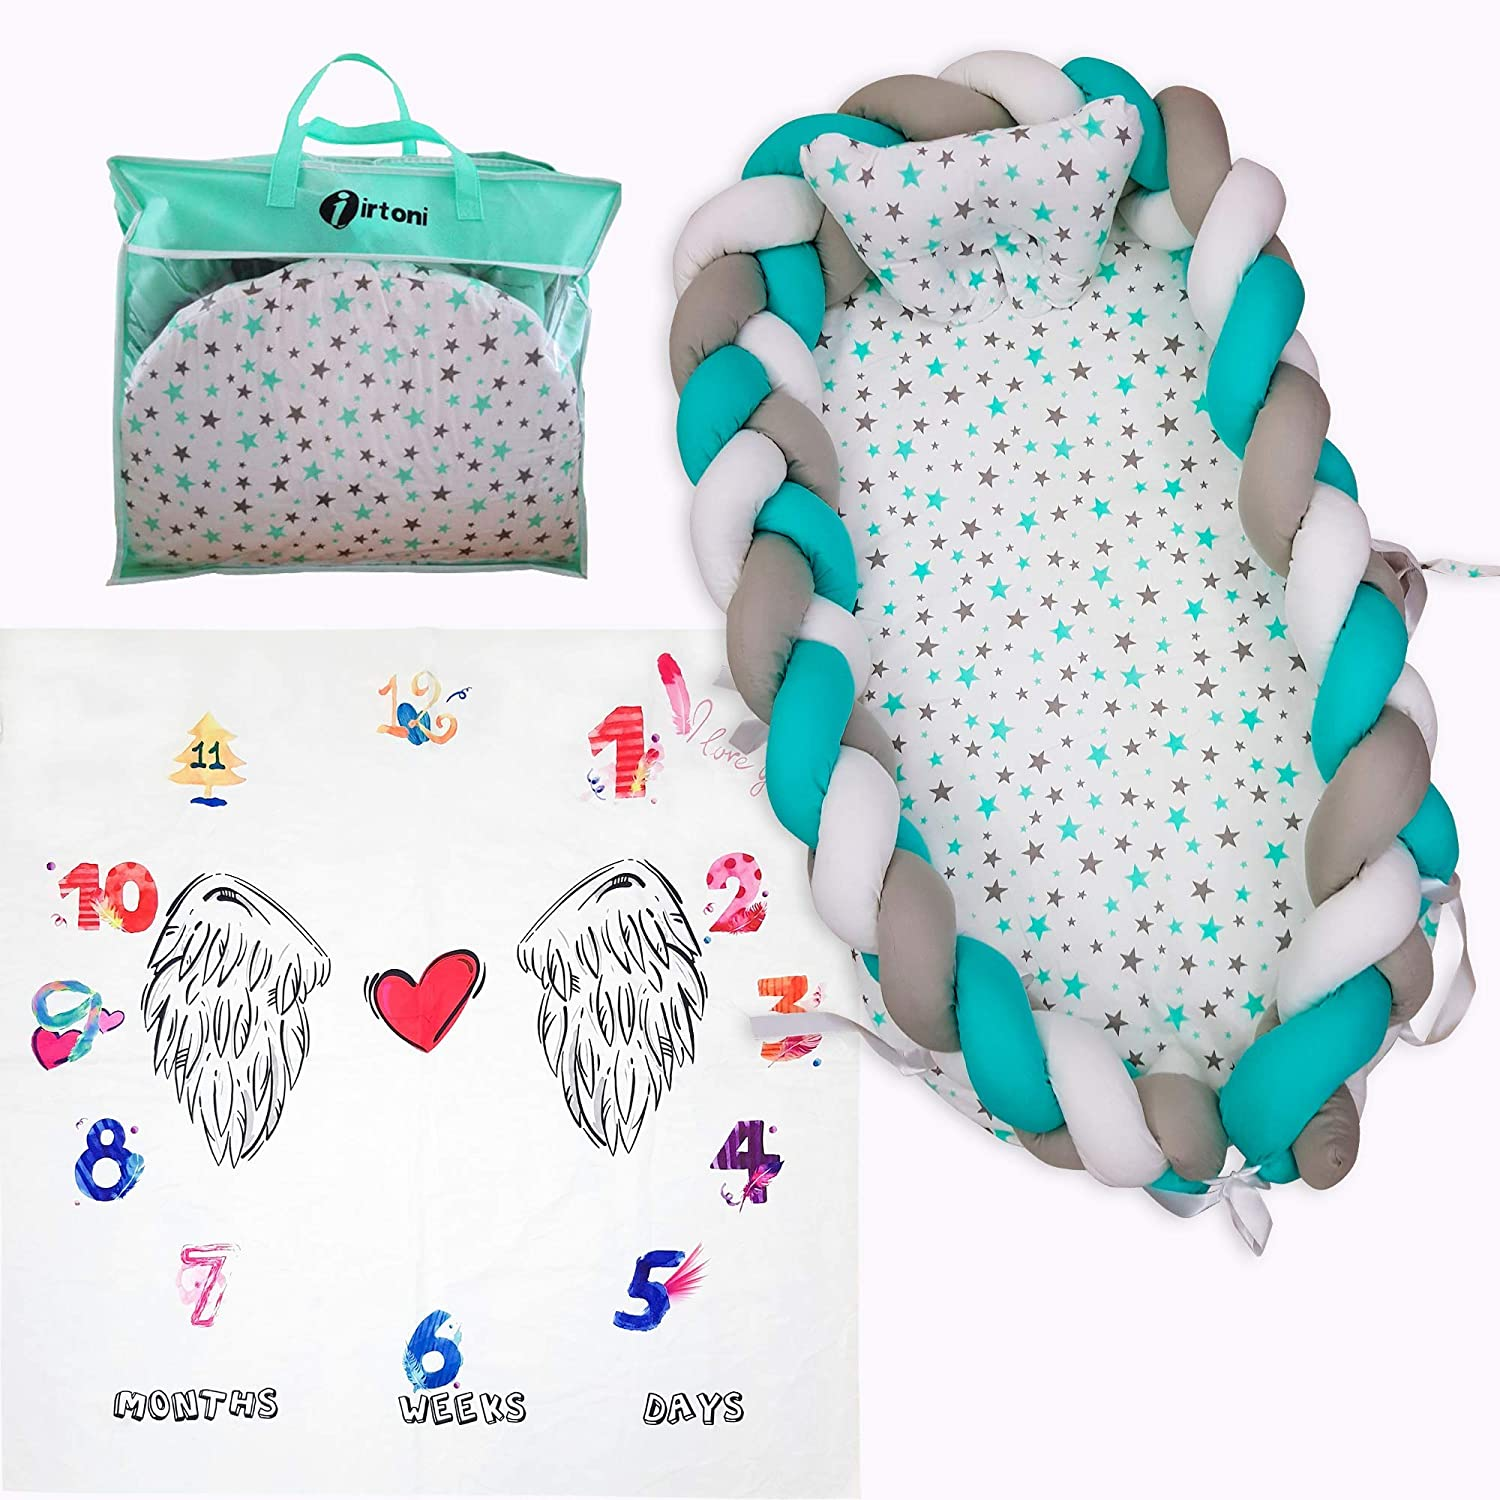 Irtoni Pillow and Baby Milestone Perfect for Traveling and Napping Newborn Lounger Crib Breathable Baby Nest Portable Bassinet Bed for Co-Sleeping Infants /& Toddlers New Ultra Soft Cotton